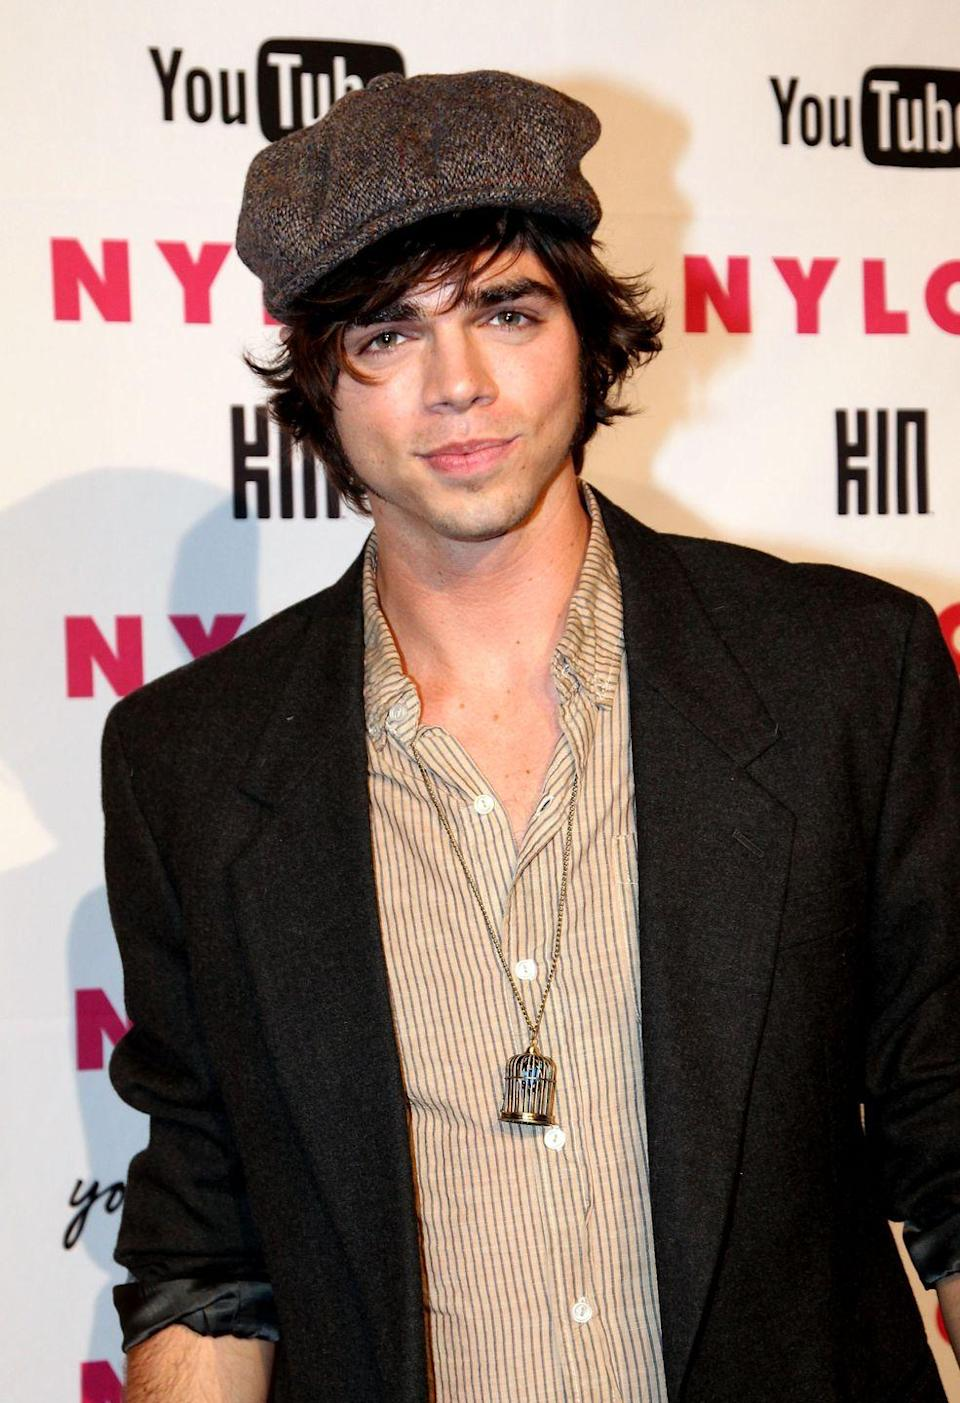 "<p><em>Modern Family </em>actor Reid Ewing underwent several cosmetic surgeries to cope with his body dysmorphia. In <a href=""https://www.huffpost.com/entry/reid-ewing-body-dysmorphia_b_8593076"" data-ylk=""slk:The Huffington Post"" class=""link rapid-noclick-resp""><em>The</em> <em>Huffington Post</em></a>, Reid said he wished he hadn't: ""After all the swelling finally went down, the results were horrendous. I vowed I would never get cosmetic surgery again even though I was still deeply insecure about my looks. It took me about six months before I was comfortable with people even looking at me. I wish I could go back and undo all the surgeries.""</p>"